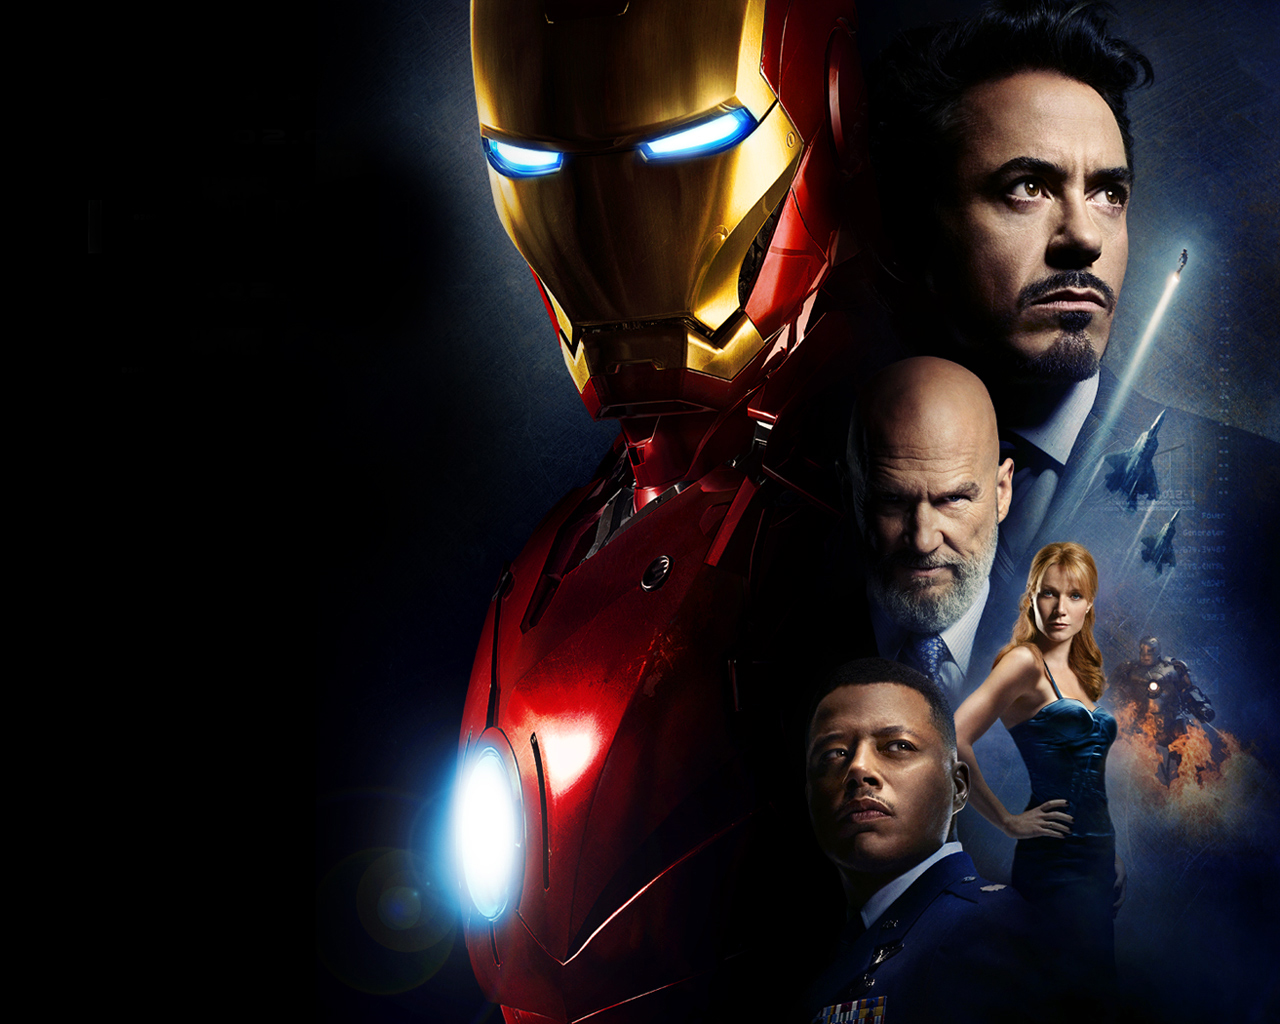 http://3.bp.blogspot.com/_swZuHDFyVM4/TUGh3ktu0tI/AAAAAAAACsk/T1--rN8THAs/s1600/movie-wallpaper-iron-man-2008-robert-downey-jr-gwyneth-paltrow-jeff-bridges-terrence-howard.jpg